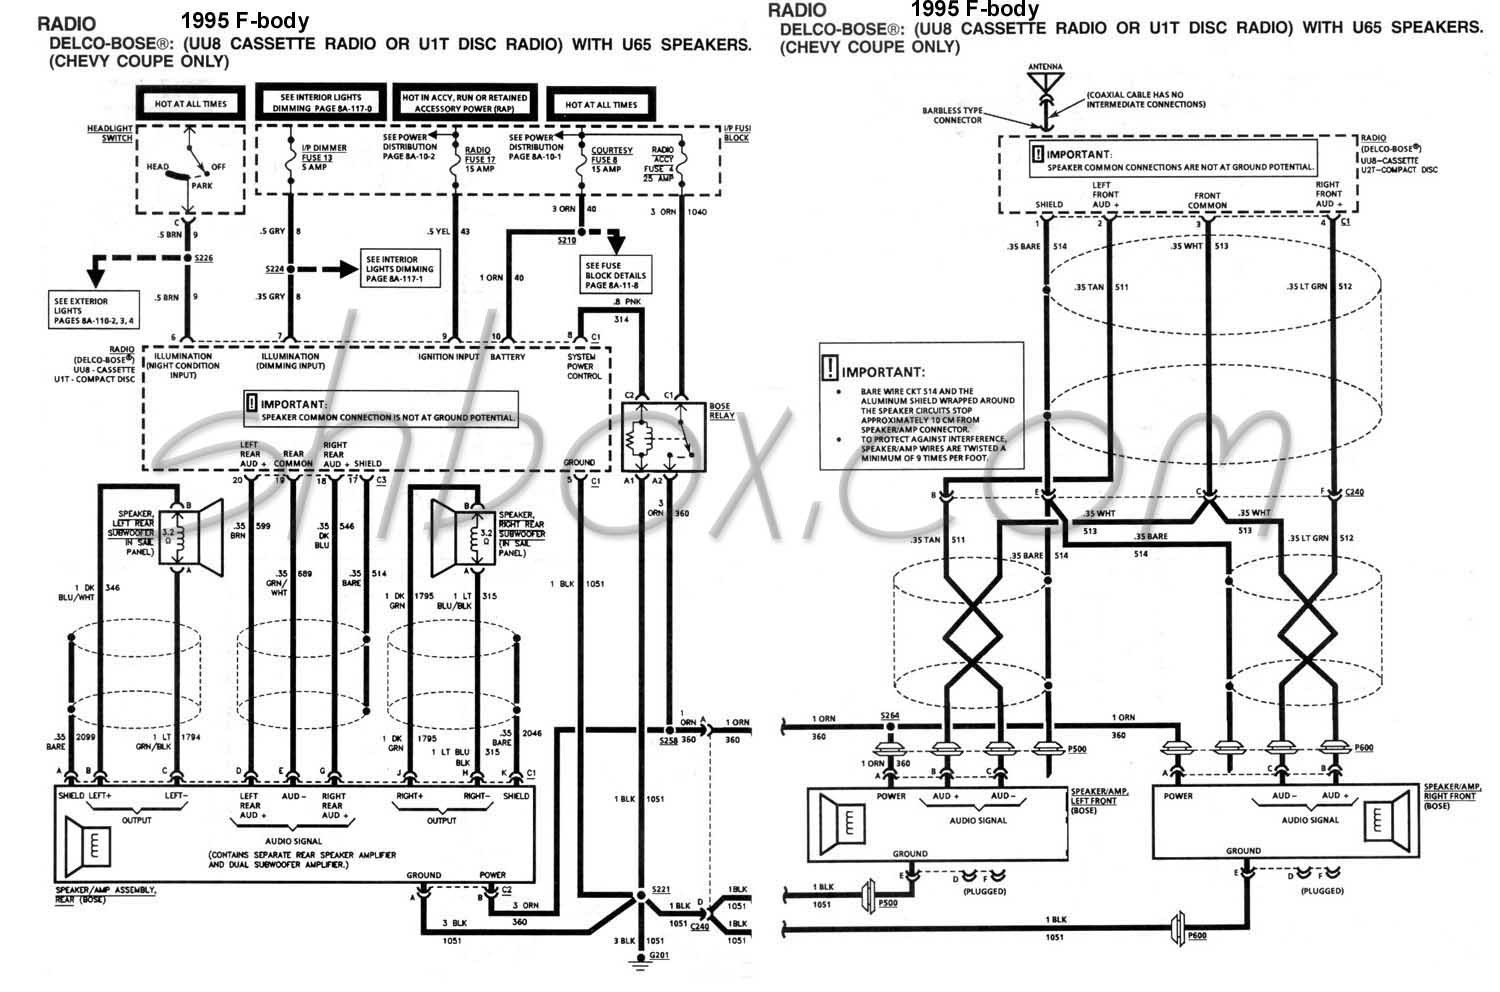 hight resolution of 1993 camaro dash wiring diagram wiring diagram origin 69 camaro wiring diagram car stereo wiring diagram 1980 camaro